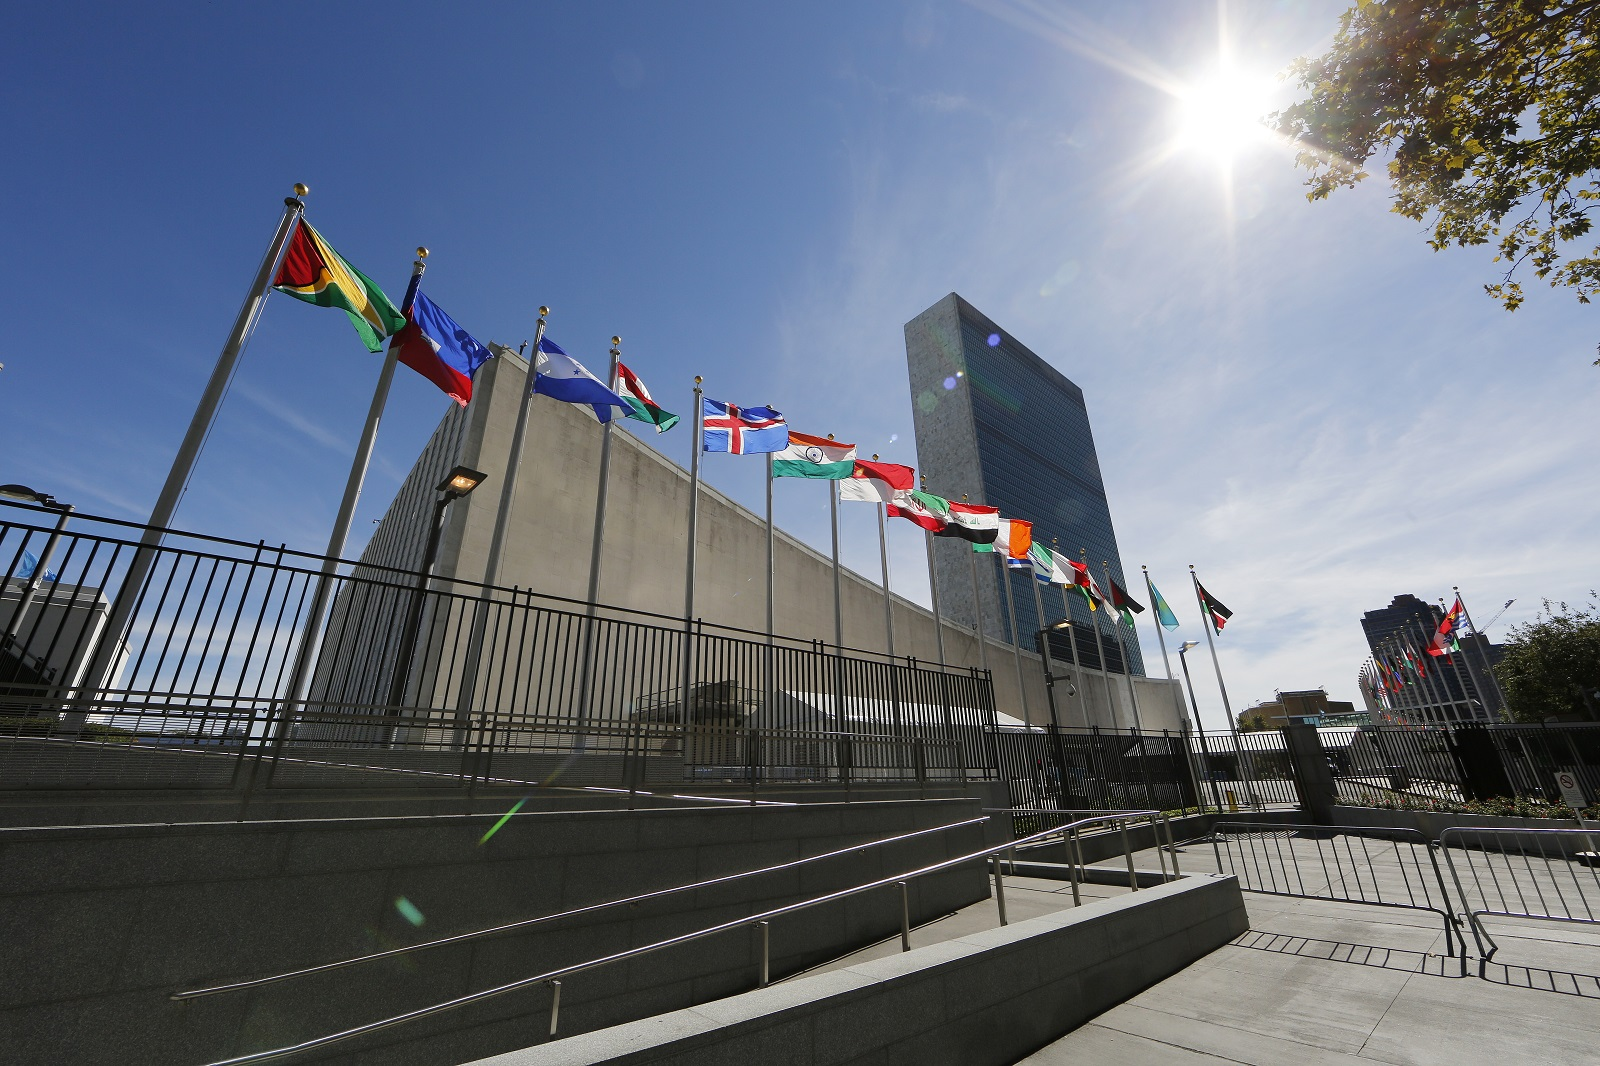 United Nations Headquarters' General Assembly Building (L) and Secretariat Building (R) in New York City, New York, USA, 24 September 2015. Pope Francis will address the UN General Assembly 25 September and the UN Development Summit and General Assembly will take place from 25 September through 03 October with more than 150 heads of state in attendance.